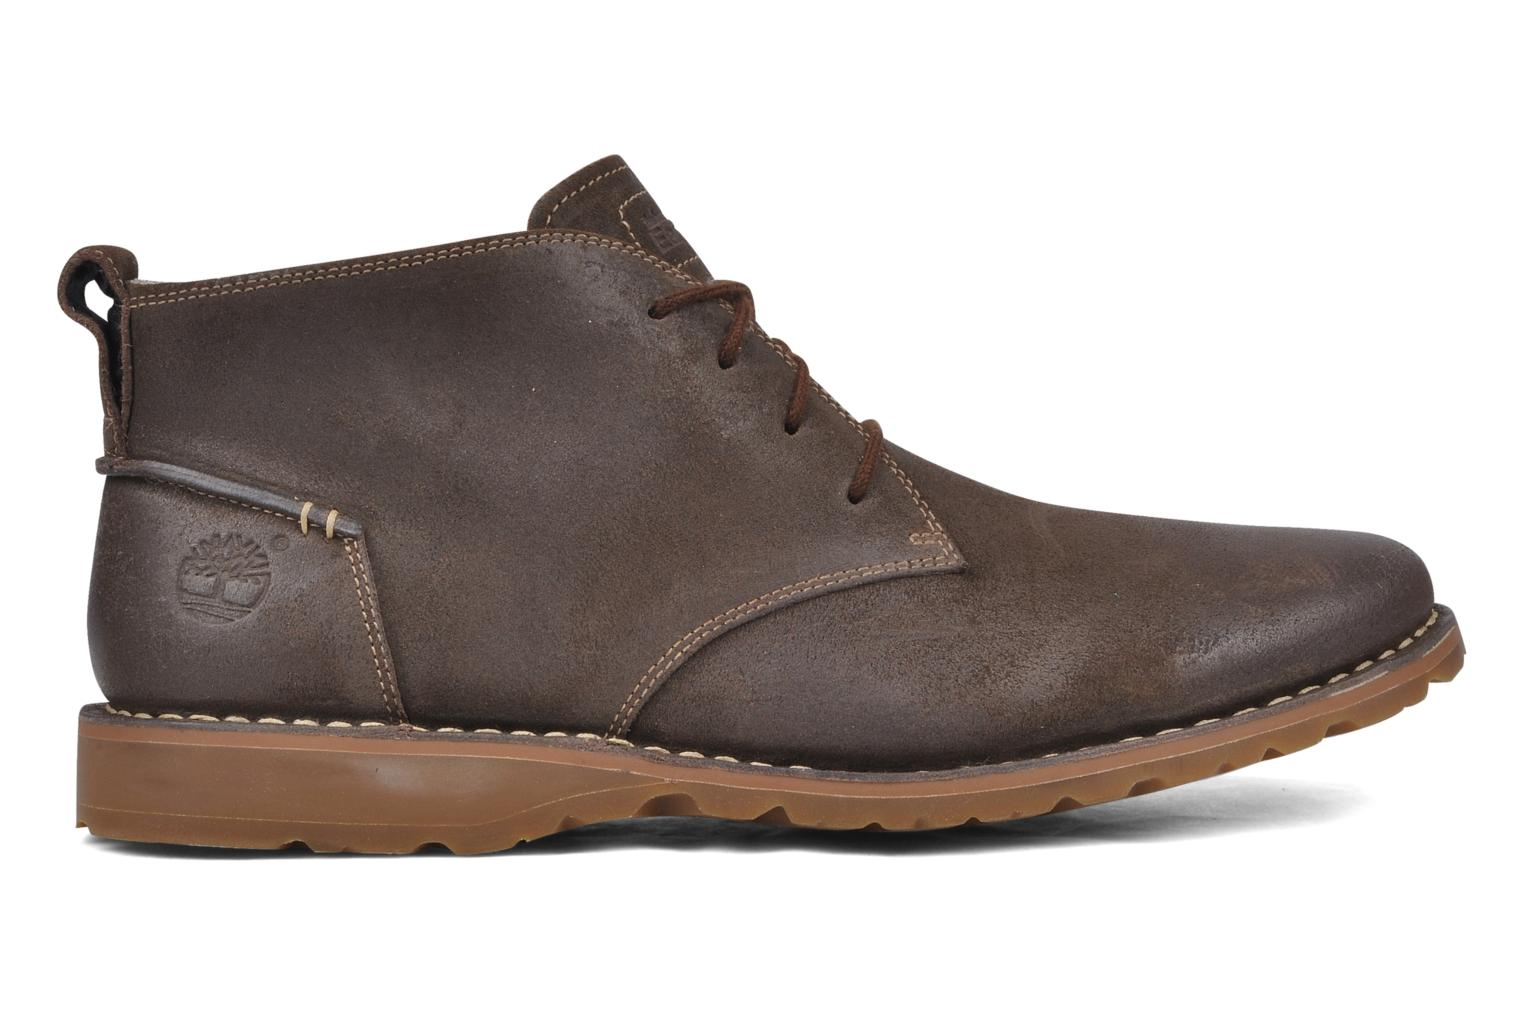 timberland earthkeepers suede desert boot ankle boots in brown at 60426. Black Bedroom Furniture Sets. Home Design Ideas